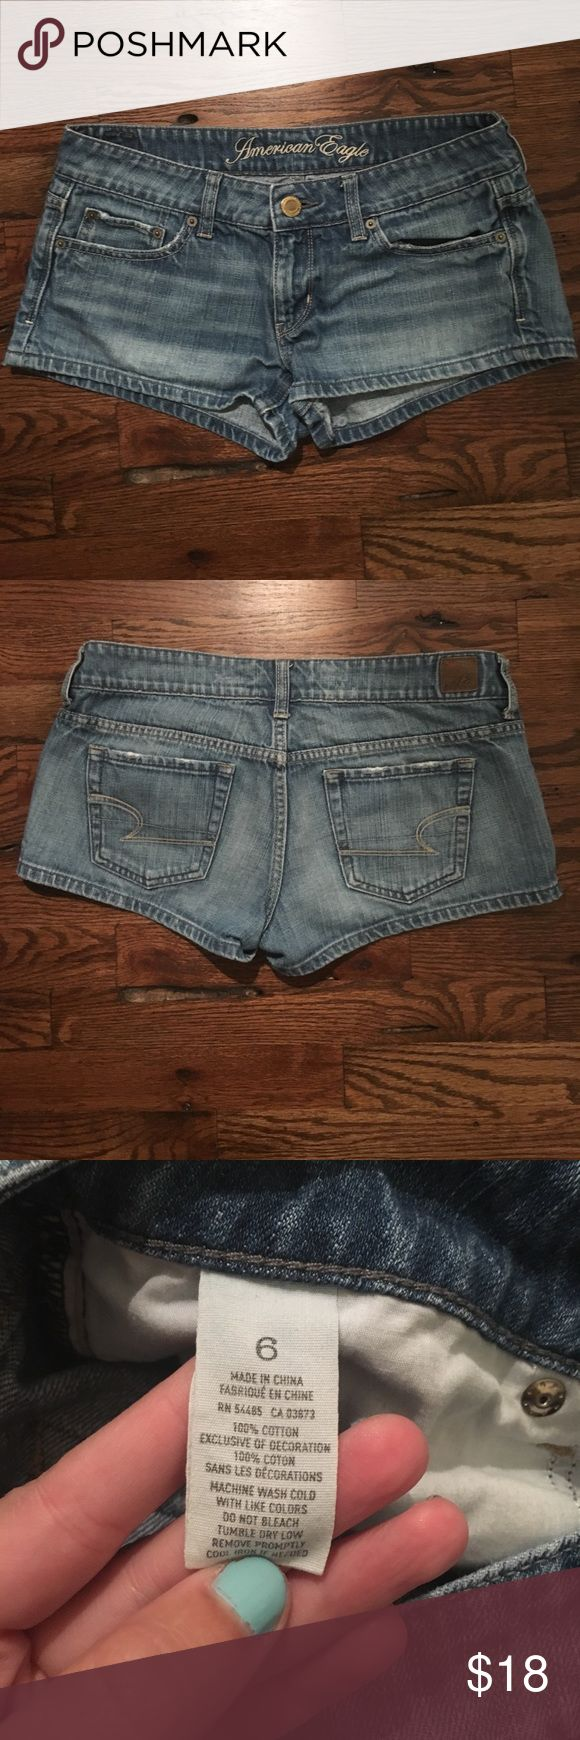 """American Eagle Daisy Duke Short Shorts Perfect for summer!! These Daisy Dukes have a 2"""" inseam, so you can show off your legs! Light wash with slight distressing on pockets. Authentic American Eagle Outfitters. Tag says size 6, but would fit a Misses 4 best! 🚫Please do not leave advertisements for your closet on my listings! No trades!🚫 American Eagle Outfitters Shorts Jean Shorts"""